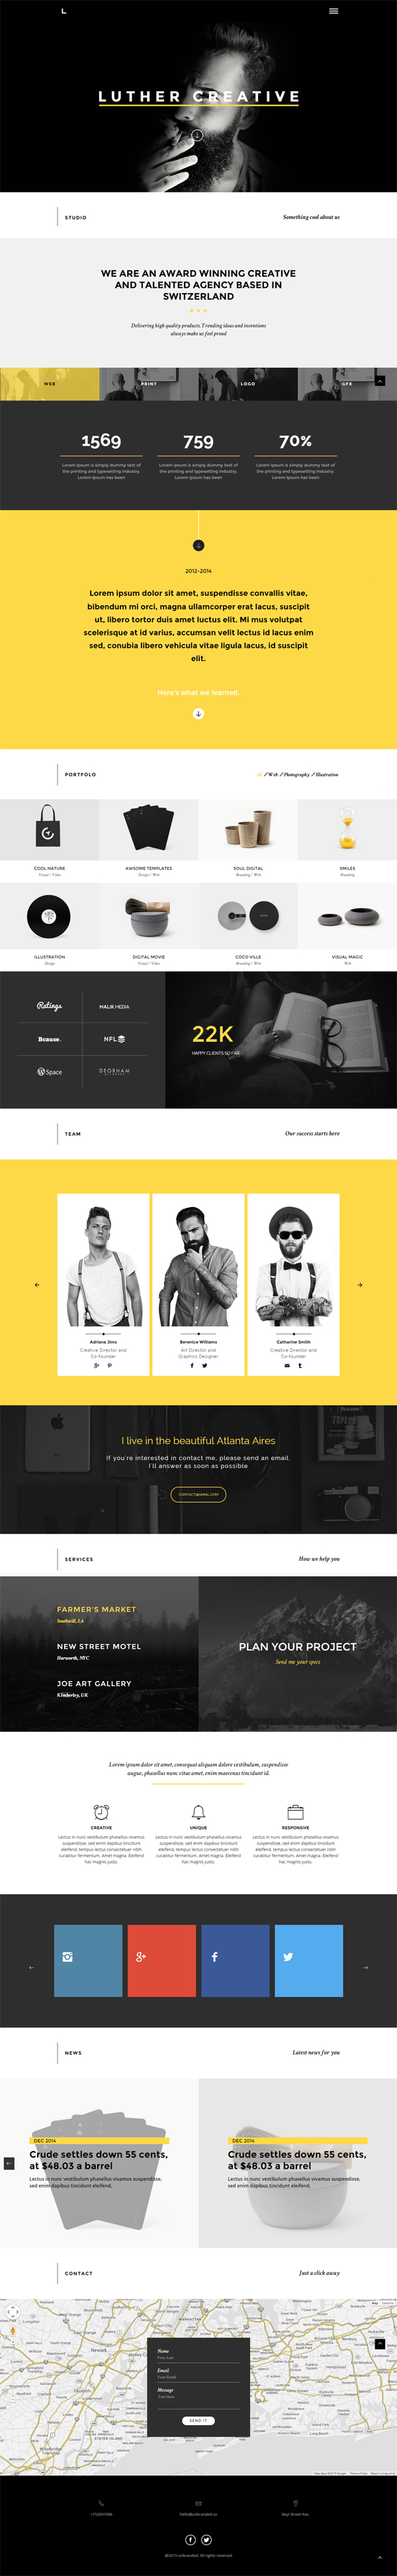 Luther - Unique & Creative One Page HTML5 Template